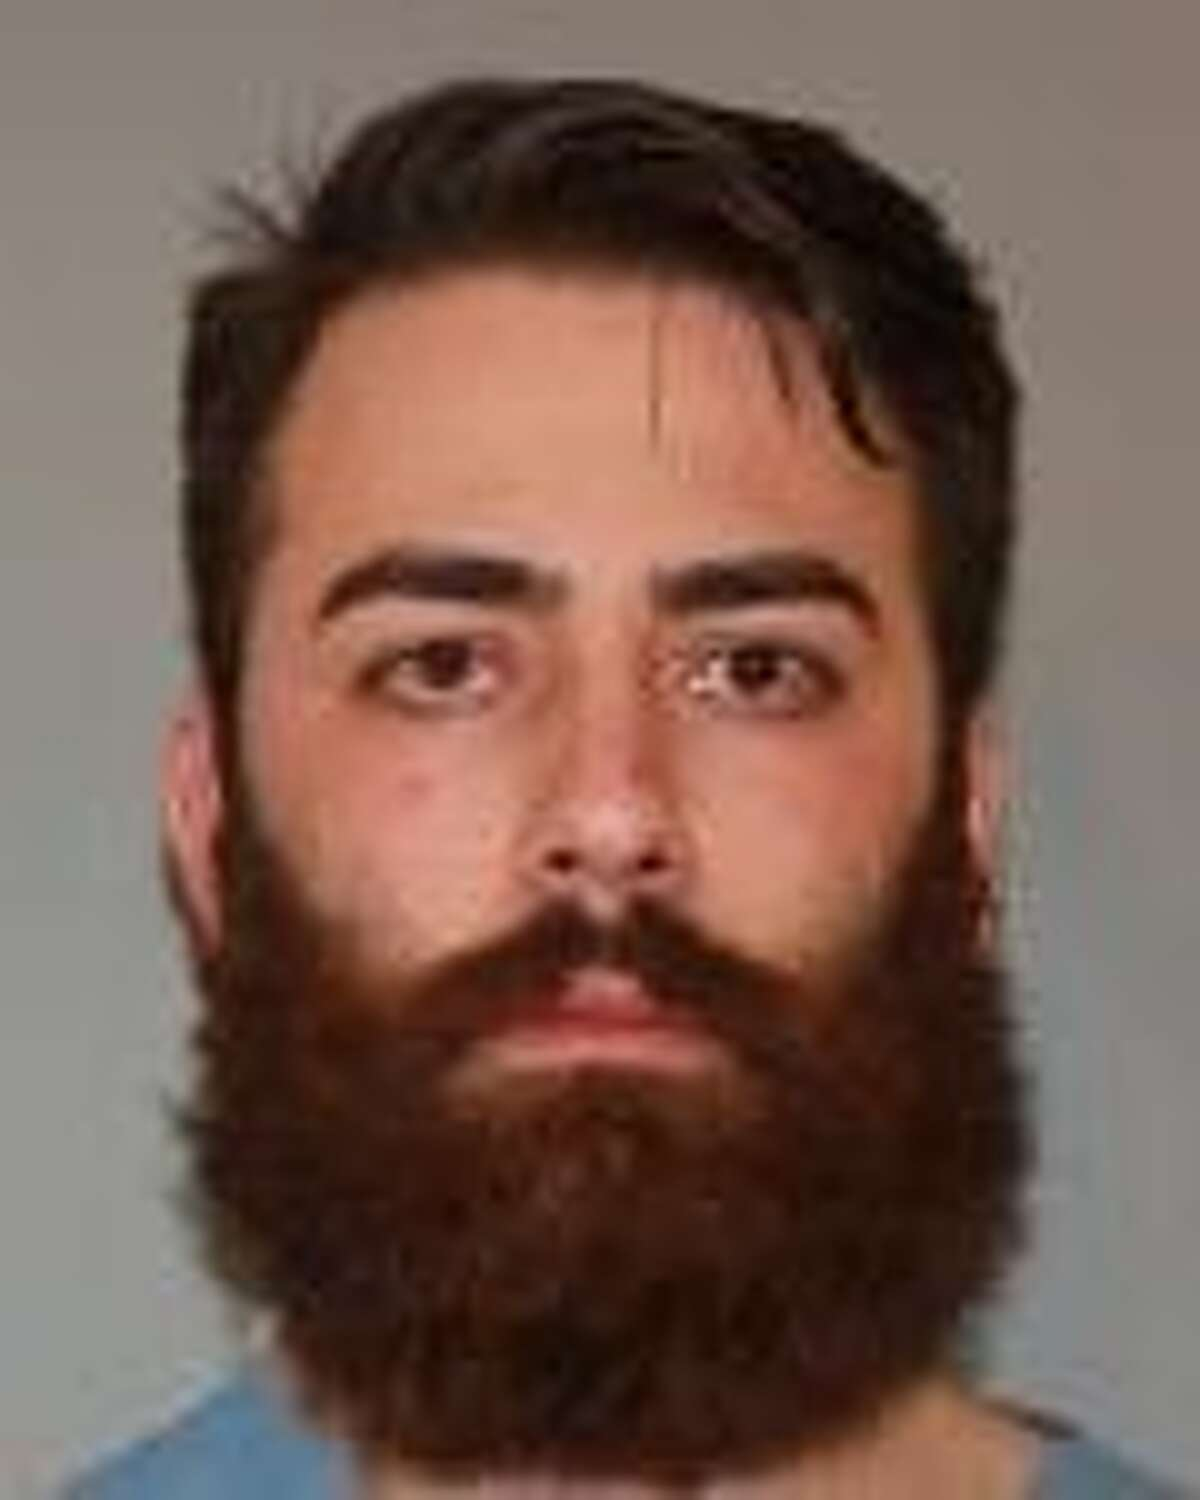 Christopher Neumann, 26, was charged with vehicular assault, a felony, and DWI after police allege he crashed into two state troopers and a tow truck driver at Exit 8 of I-90 March 4, 2018. (State Police)